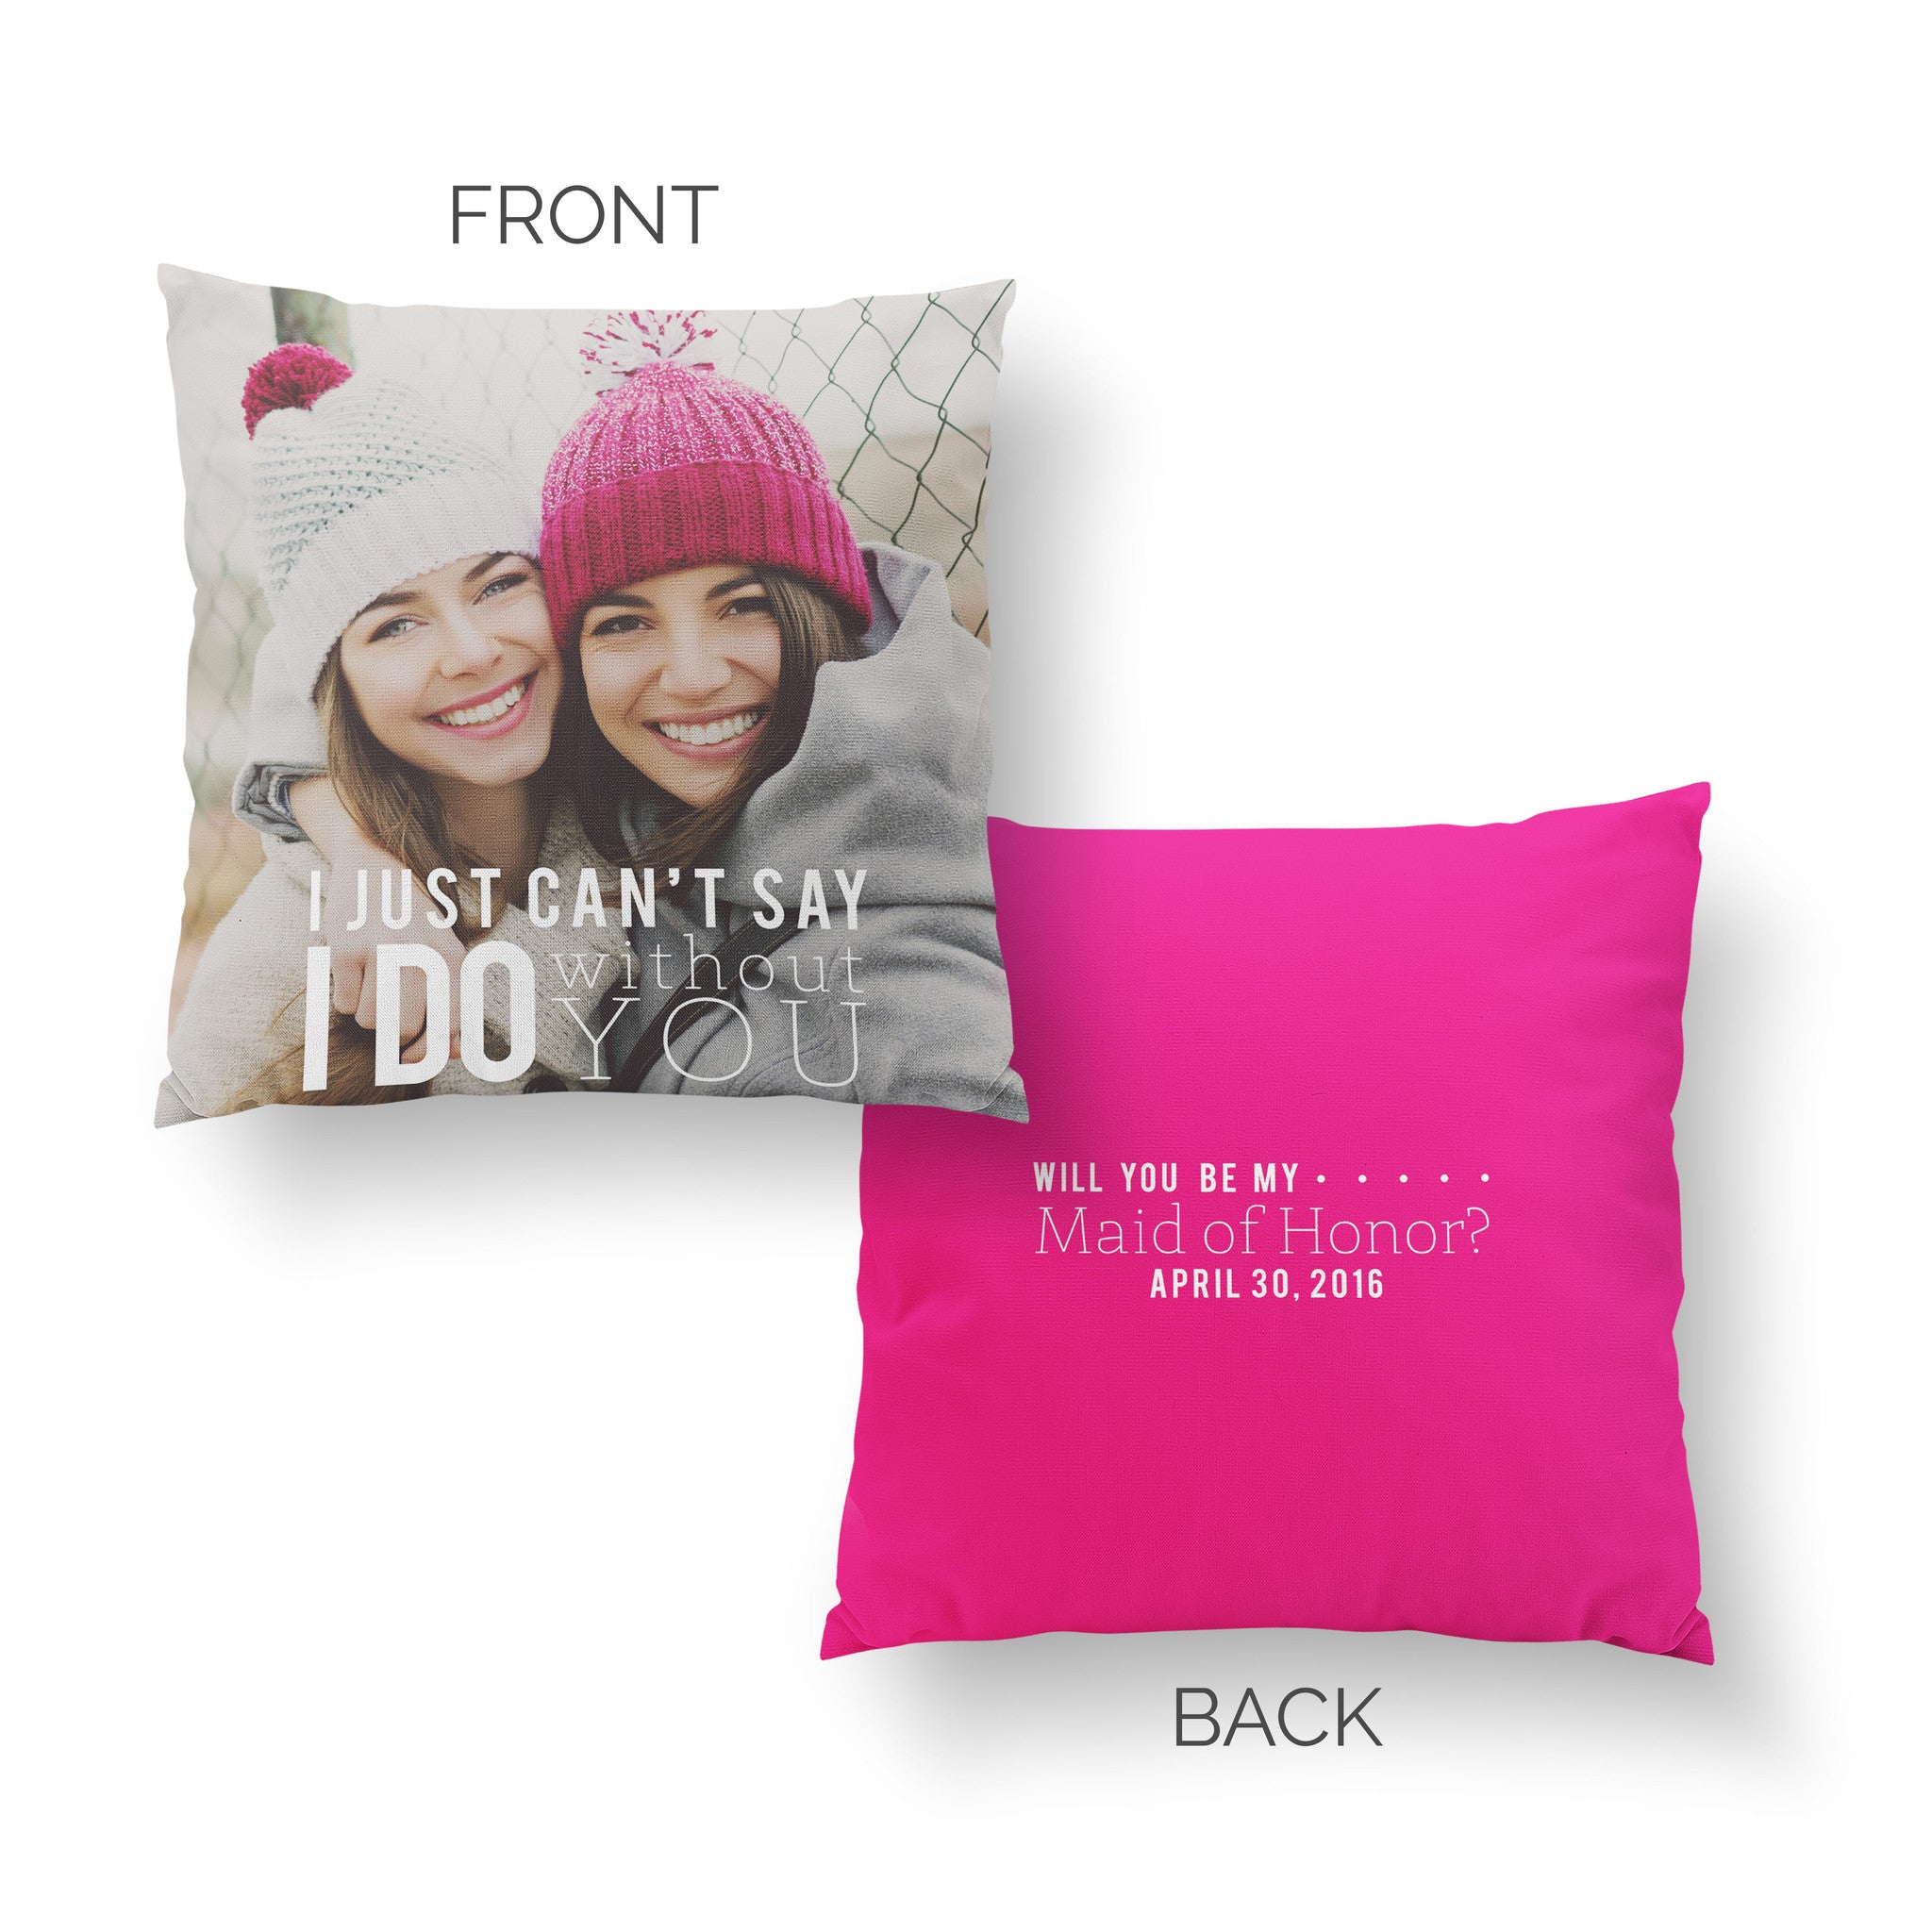 Maid of Honor Pillow - Can't Say I Do Without You